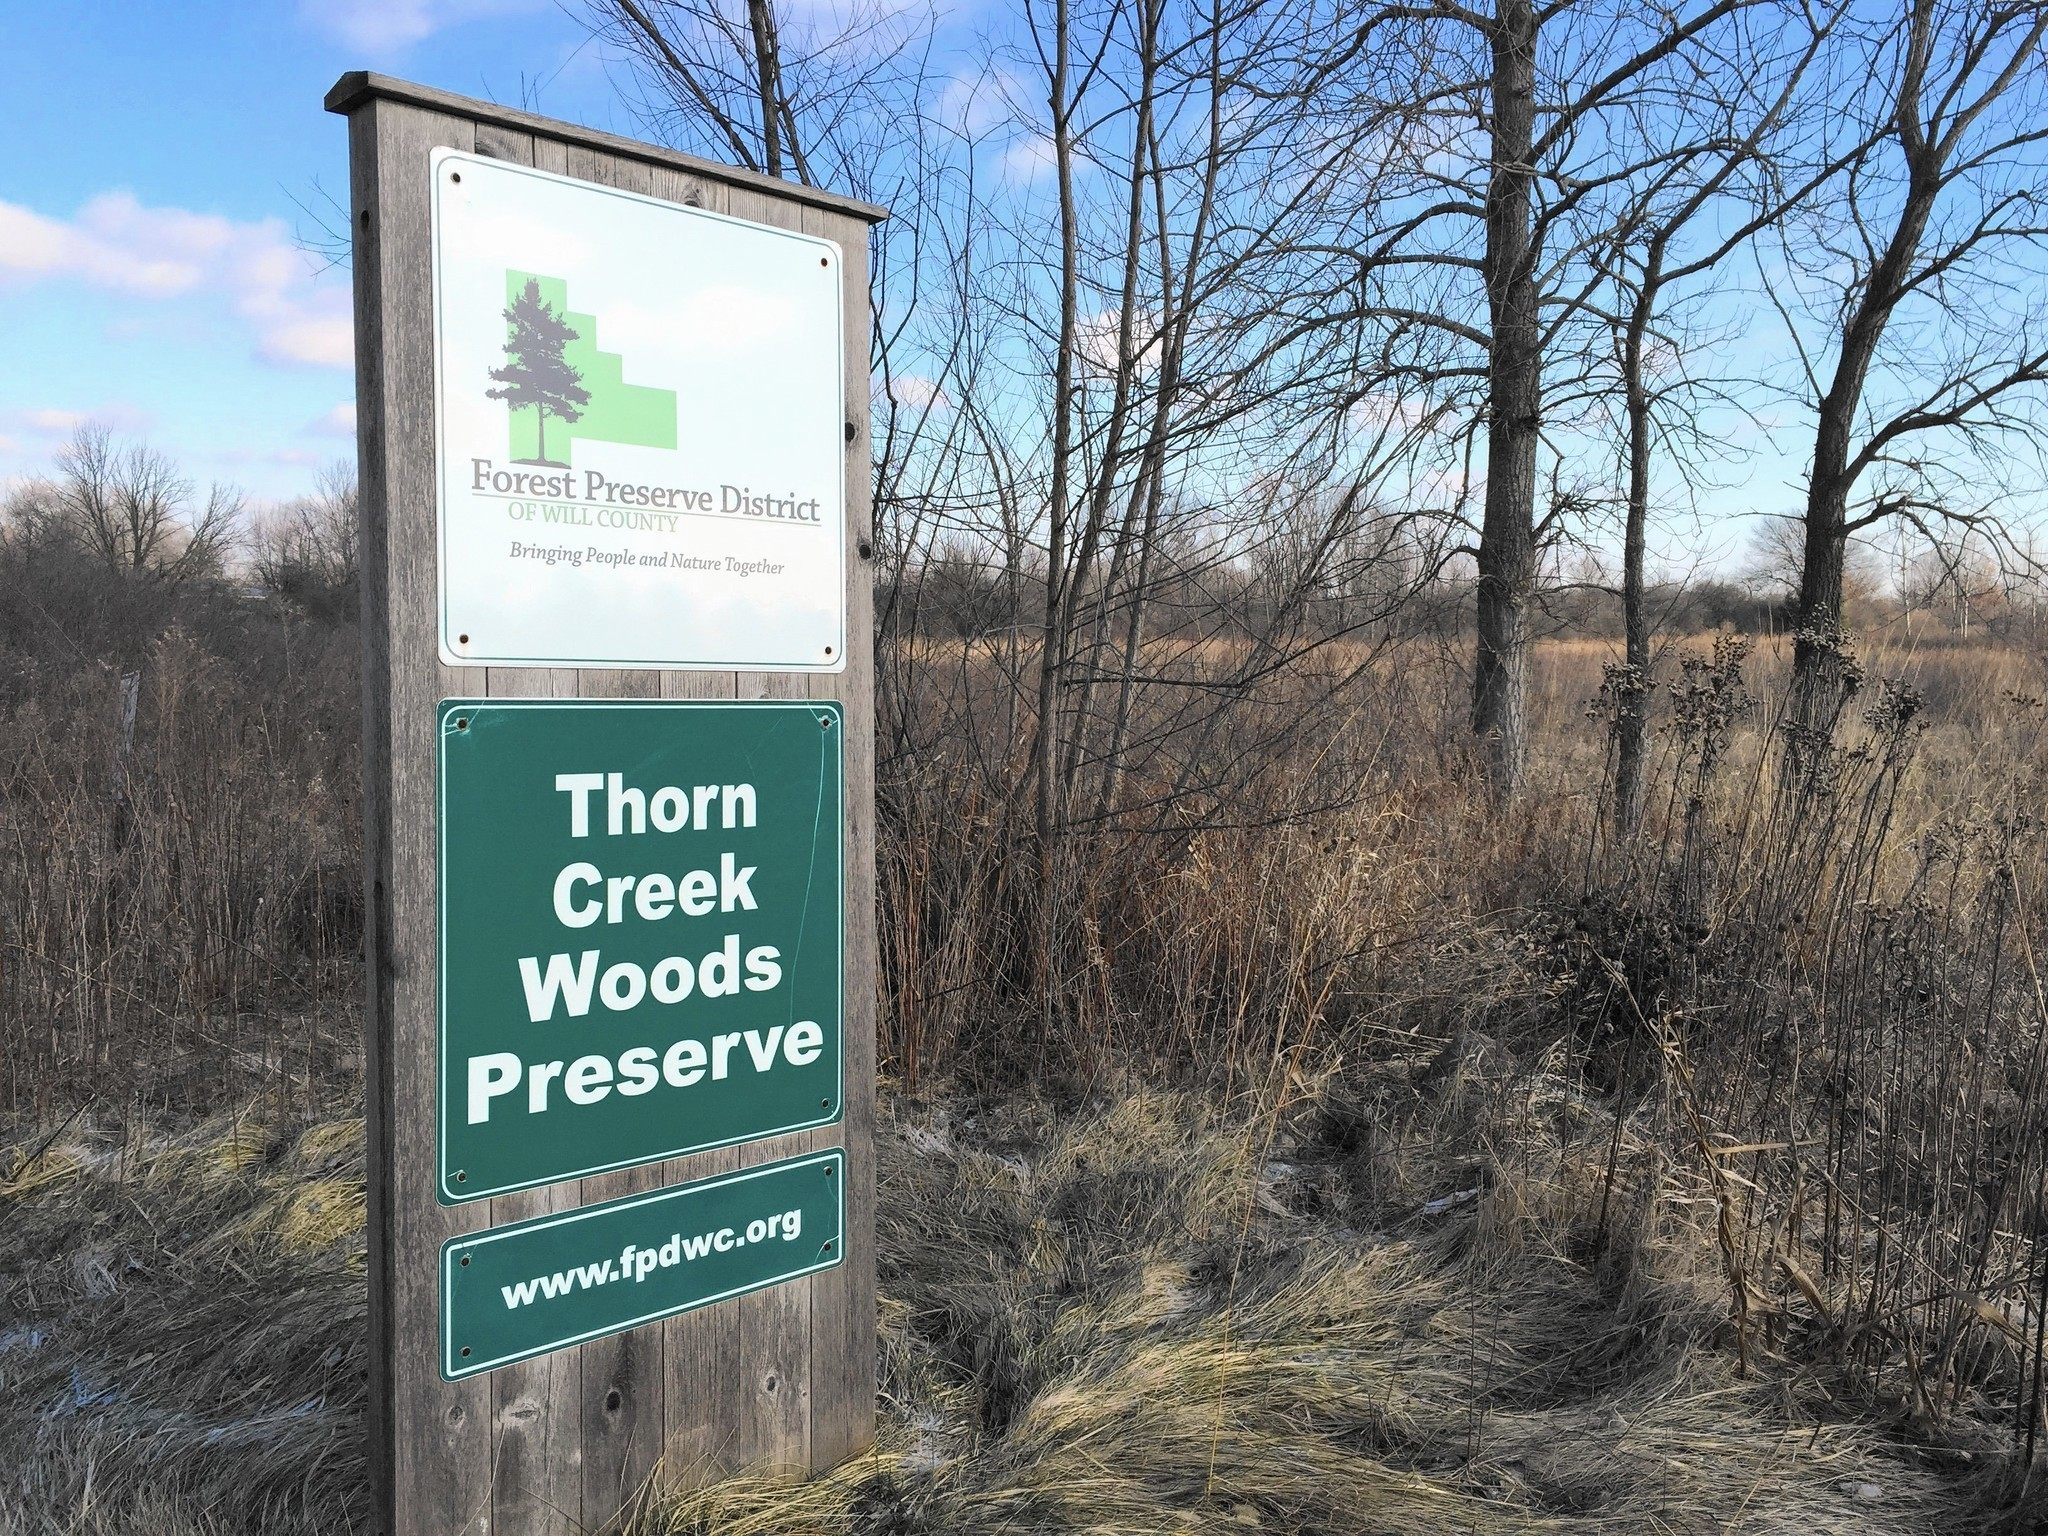 Illinois will county university park - Will County Forest Preserve District Lays Out 2017 Plans Daily Southtown